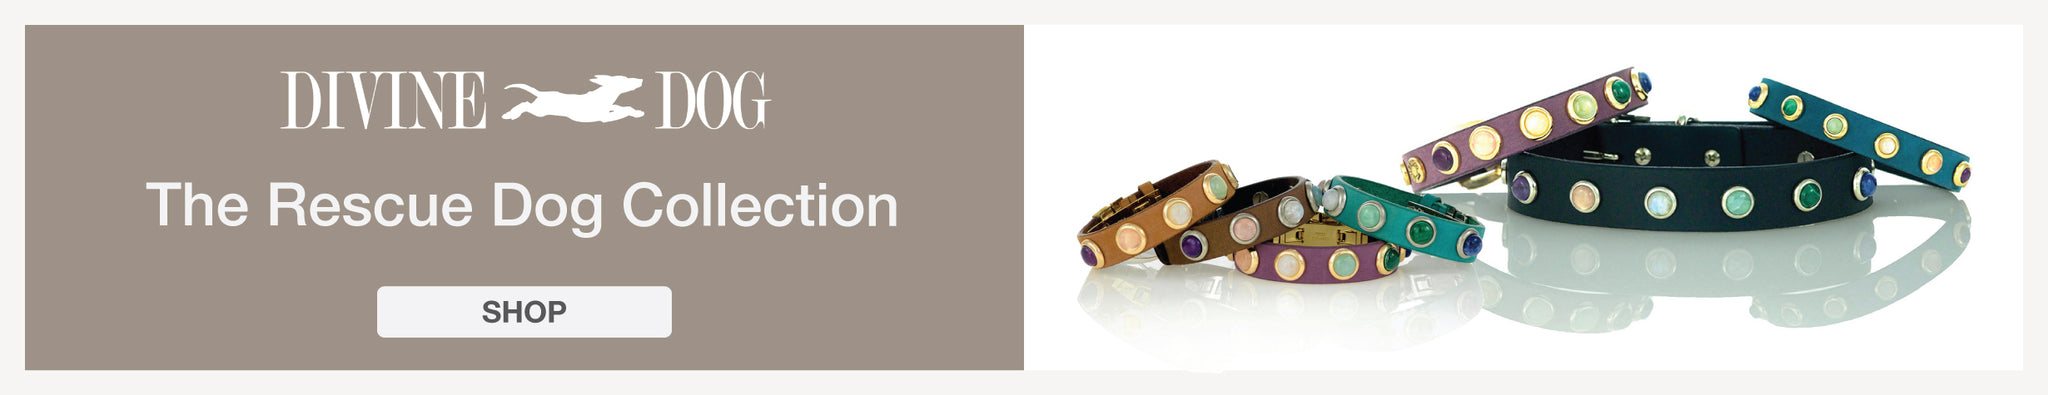 The Rescue Dog Collection of Leather Dog Collars with Gemstones